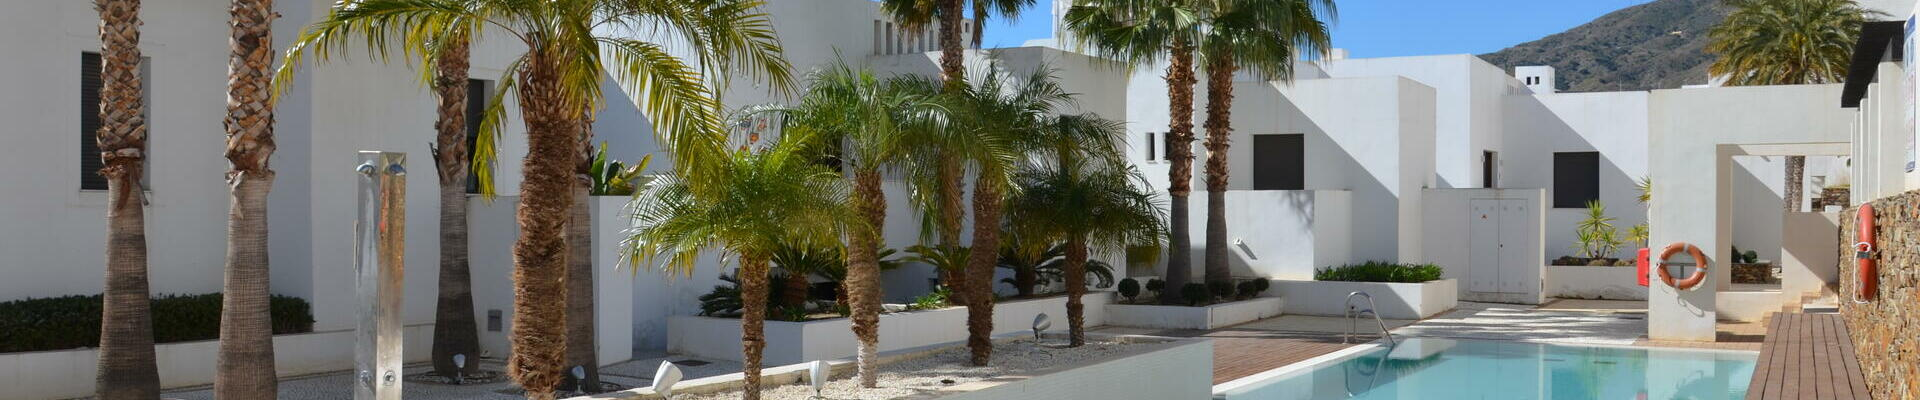 A1426: 3 Bedroom Apartment for Sale